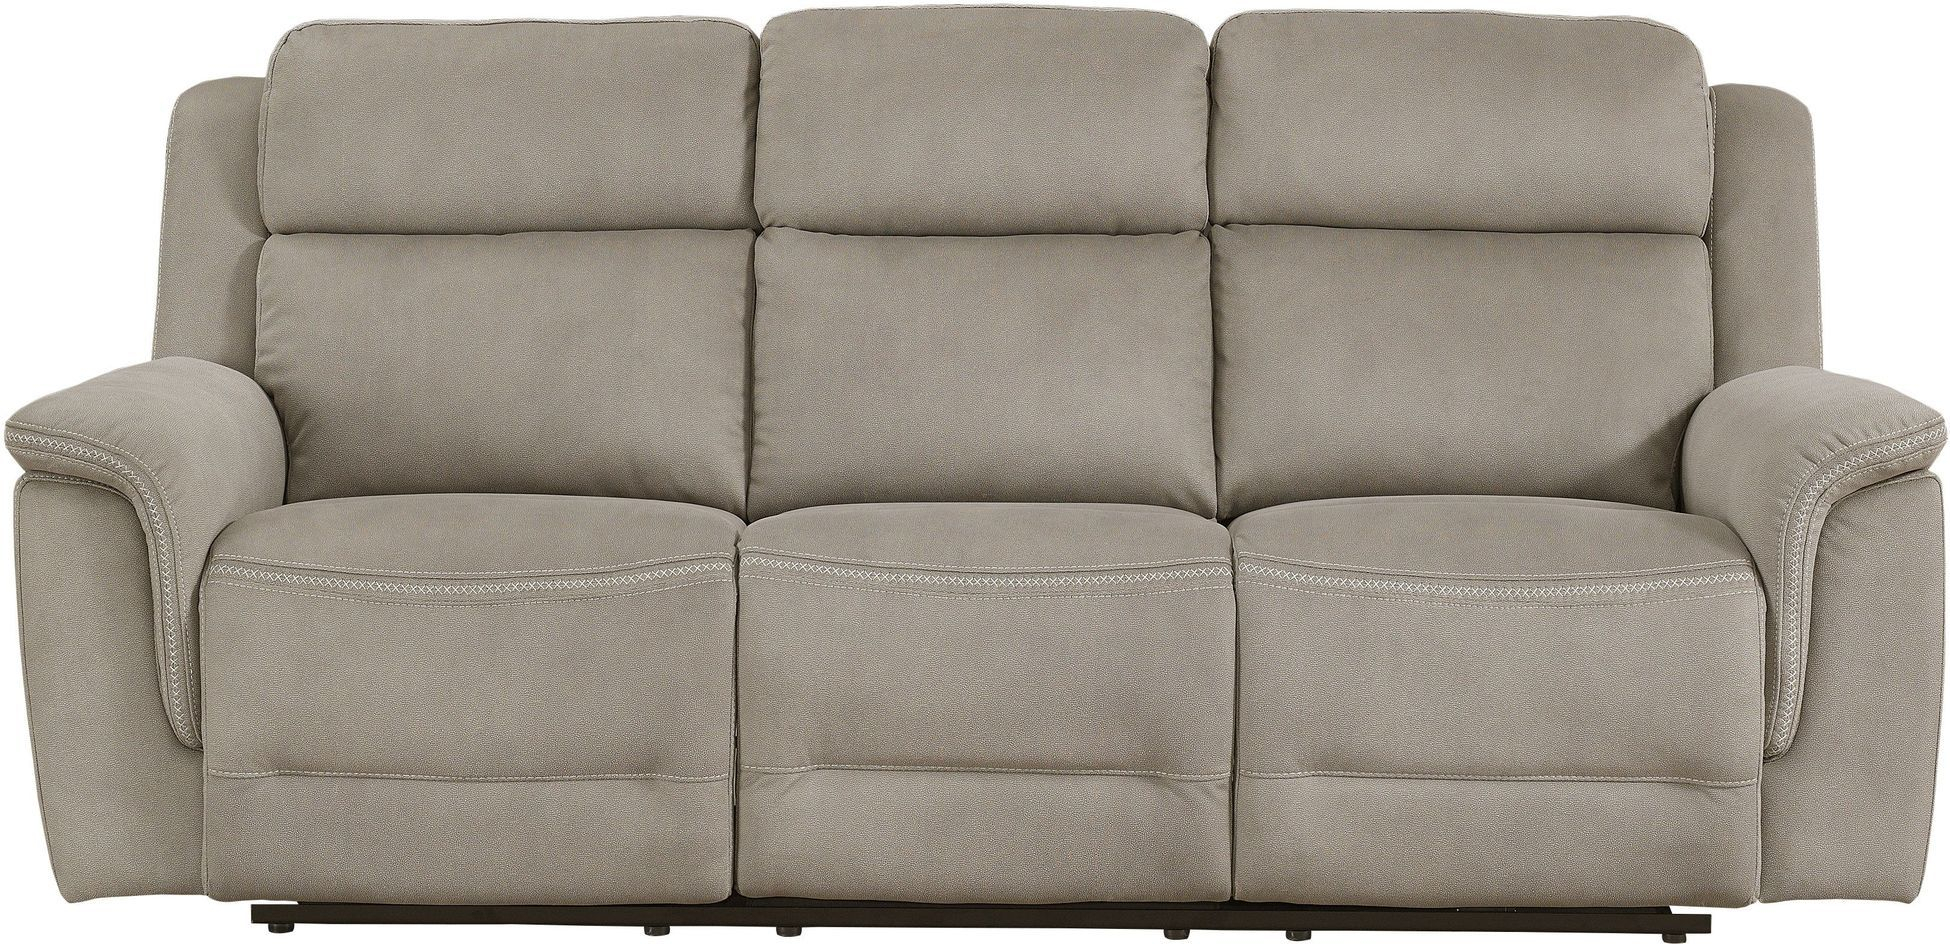 Prime Resources Noah Collection Power Reclining Sofa With Intended For Power Reclining Sofas (View 6 of 15)